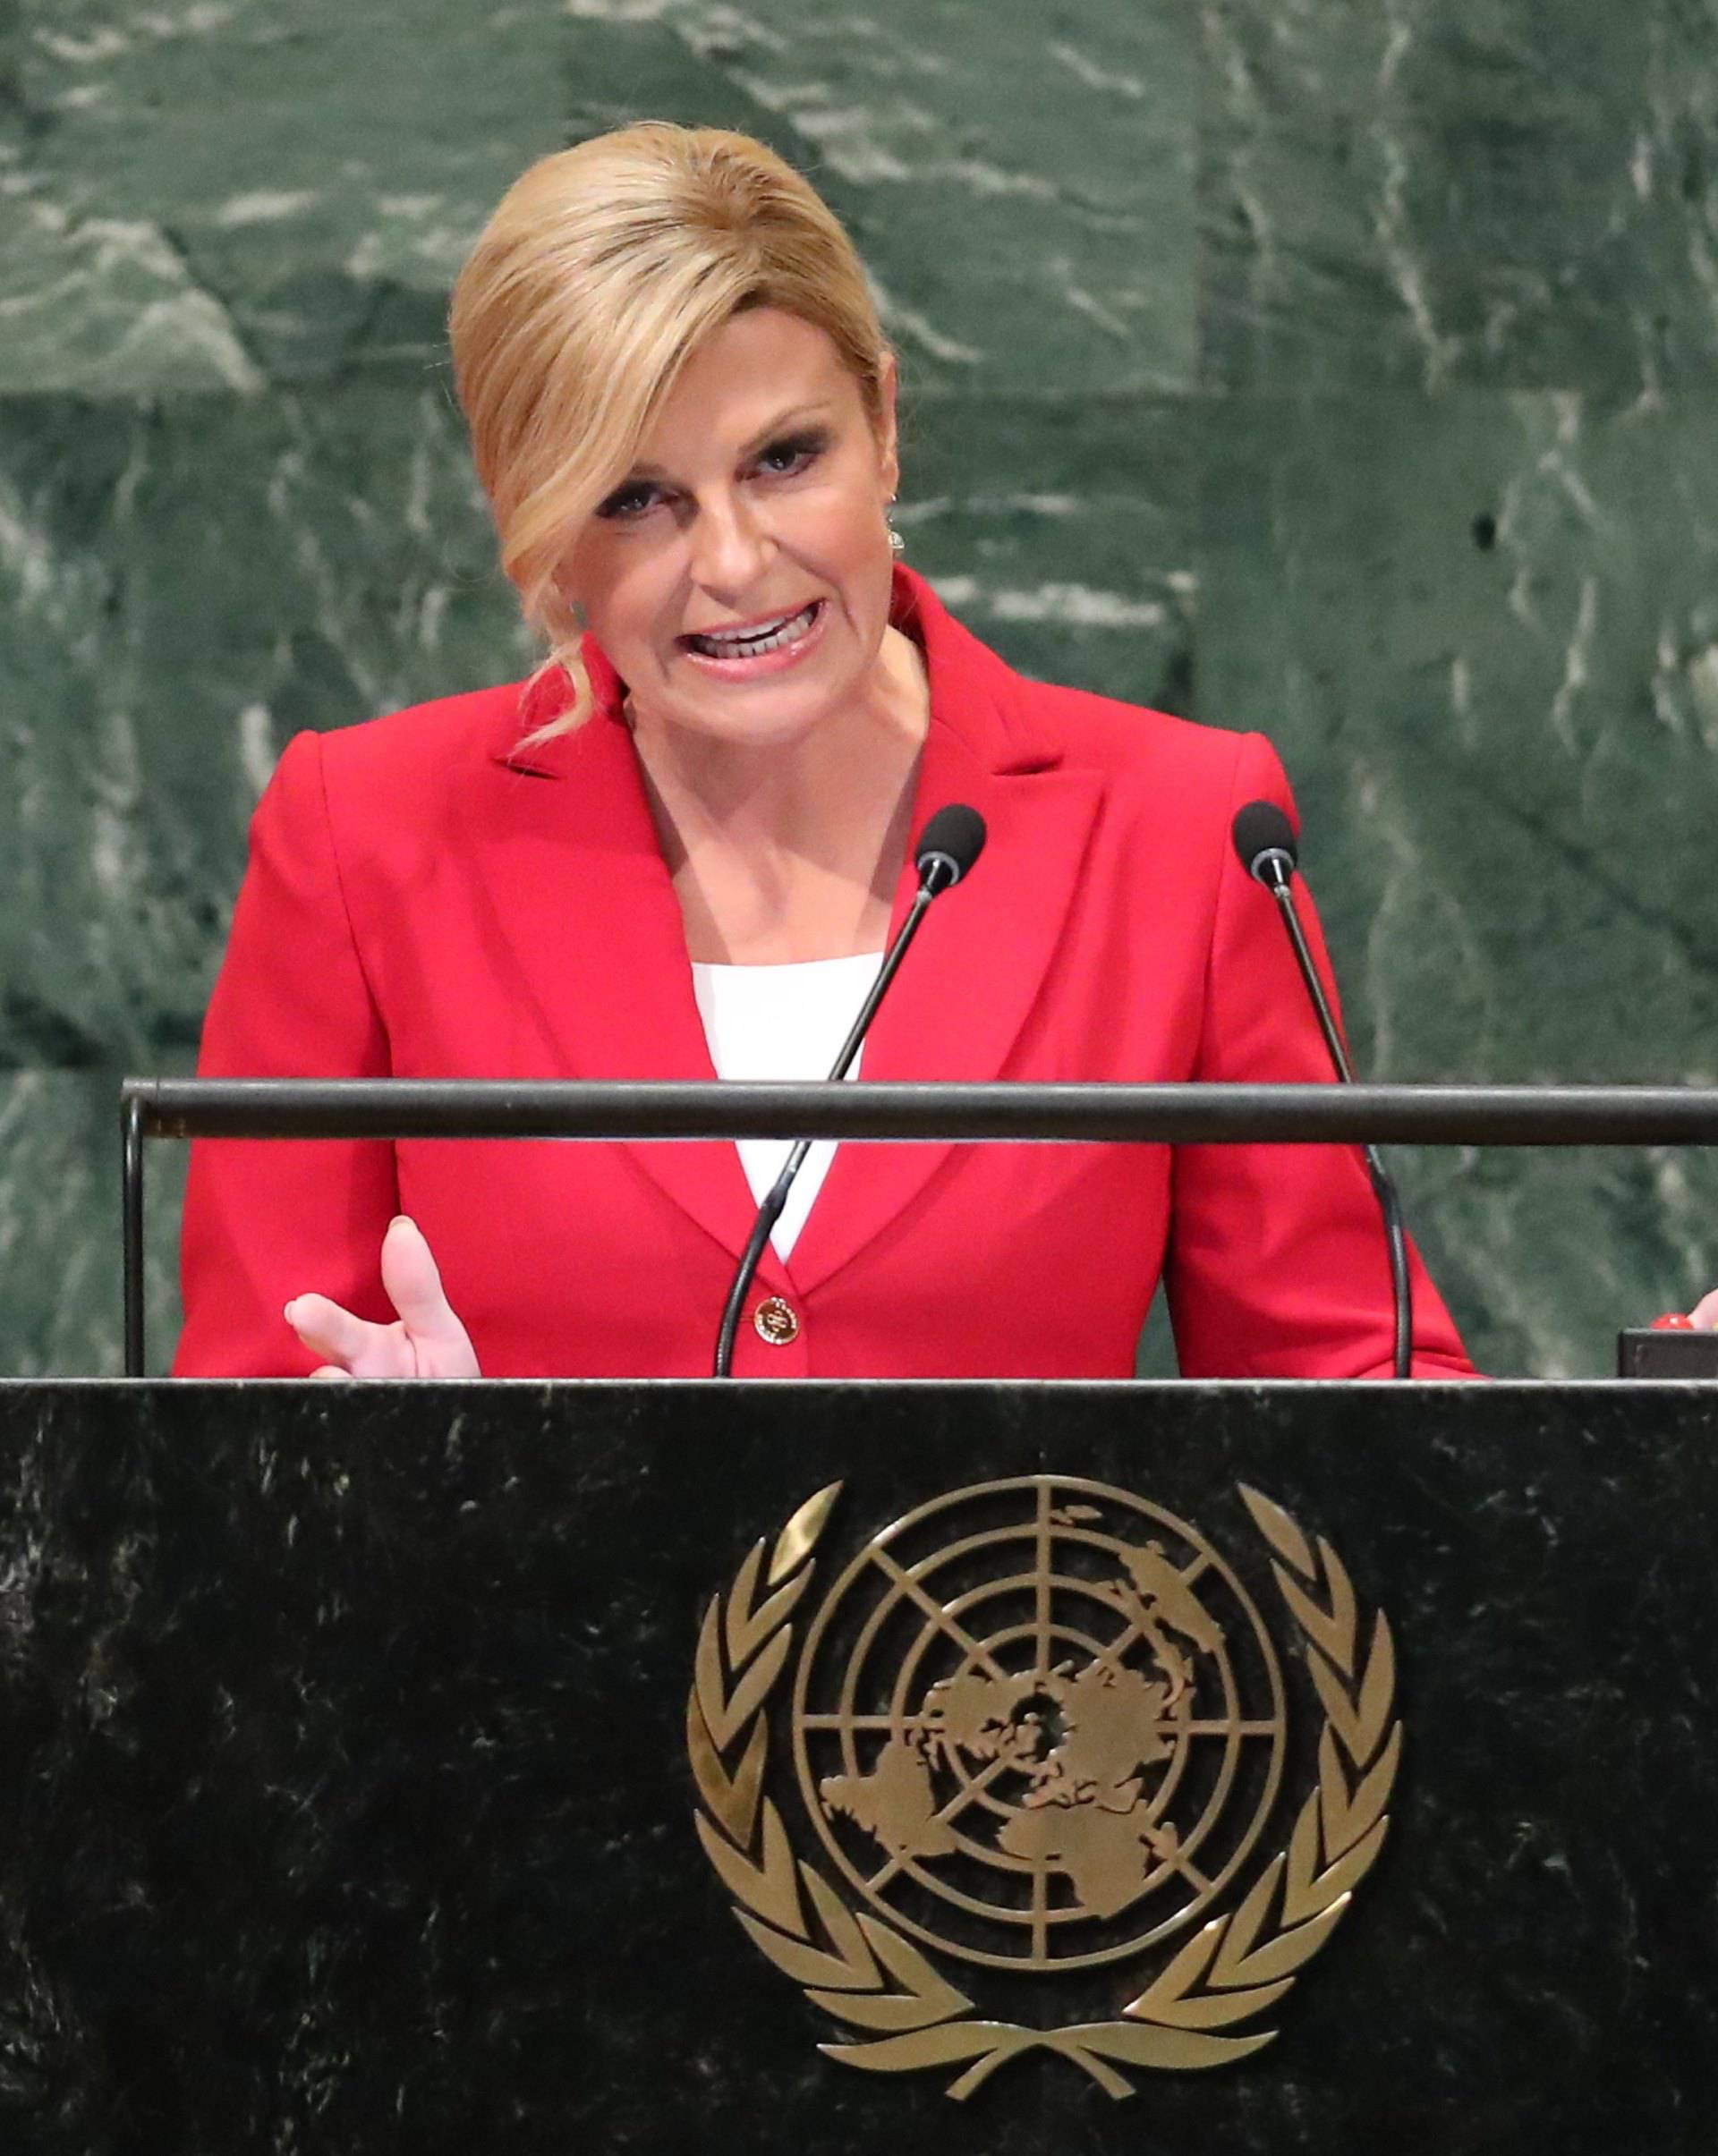 Croatia's President Kolinda Grabar-Kitarovic addresses the United Nations General Assembly in New York